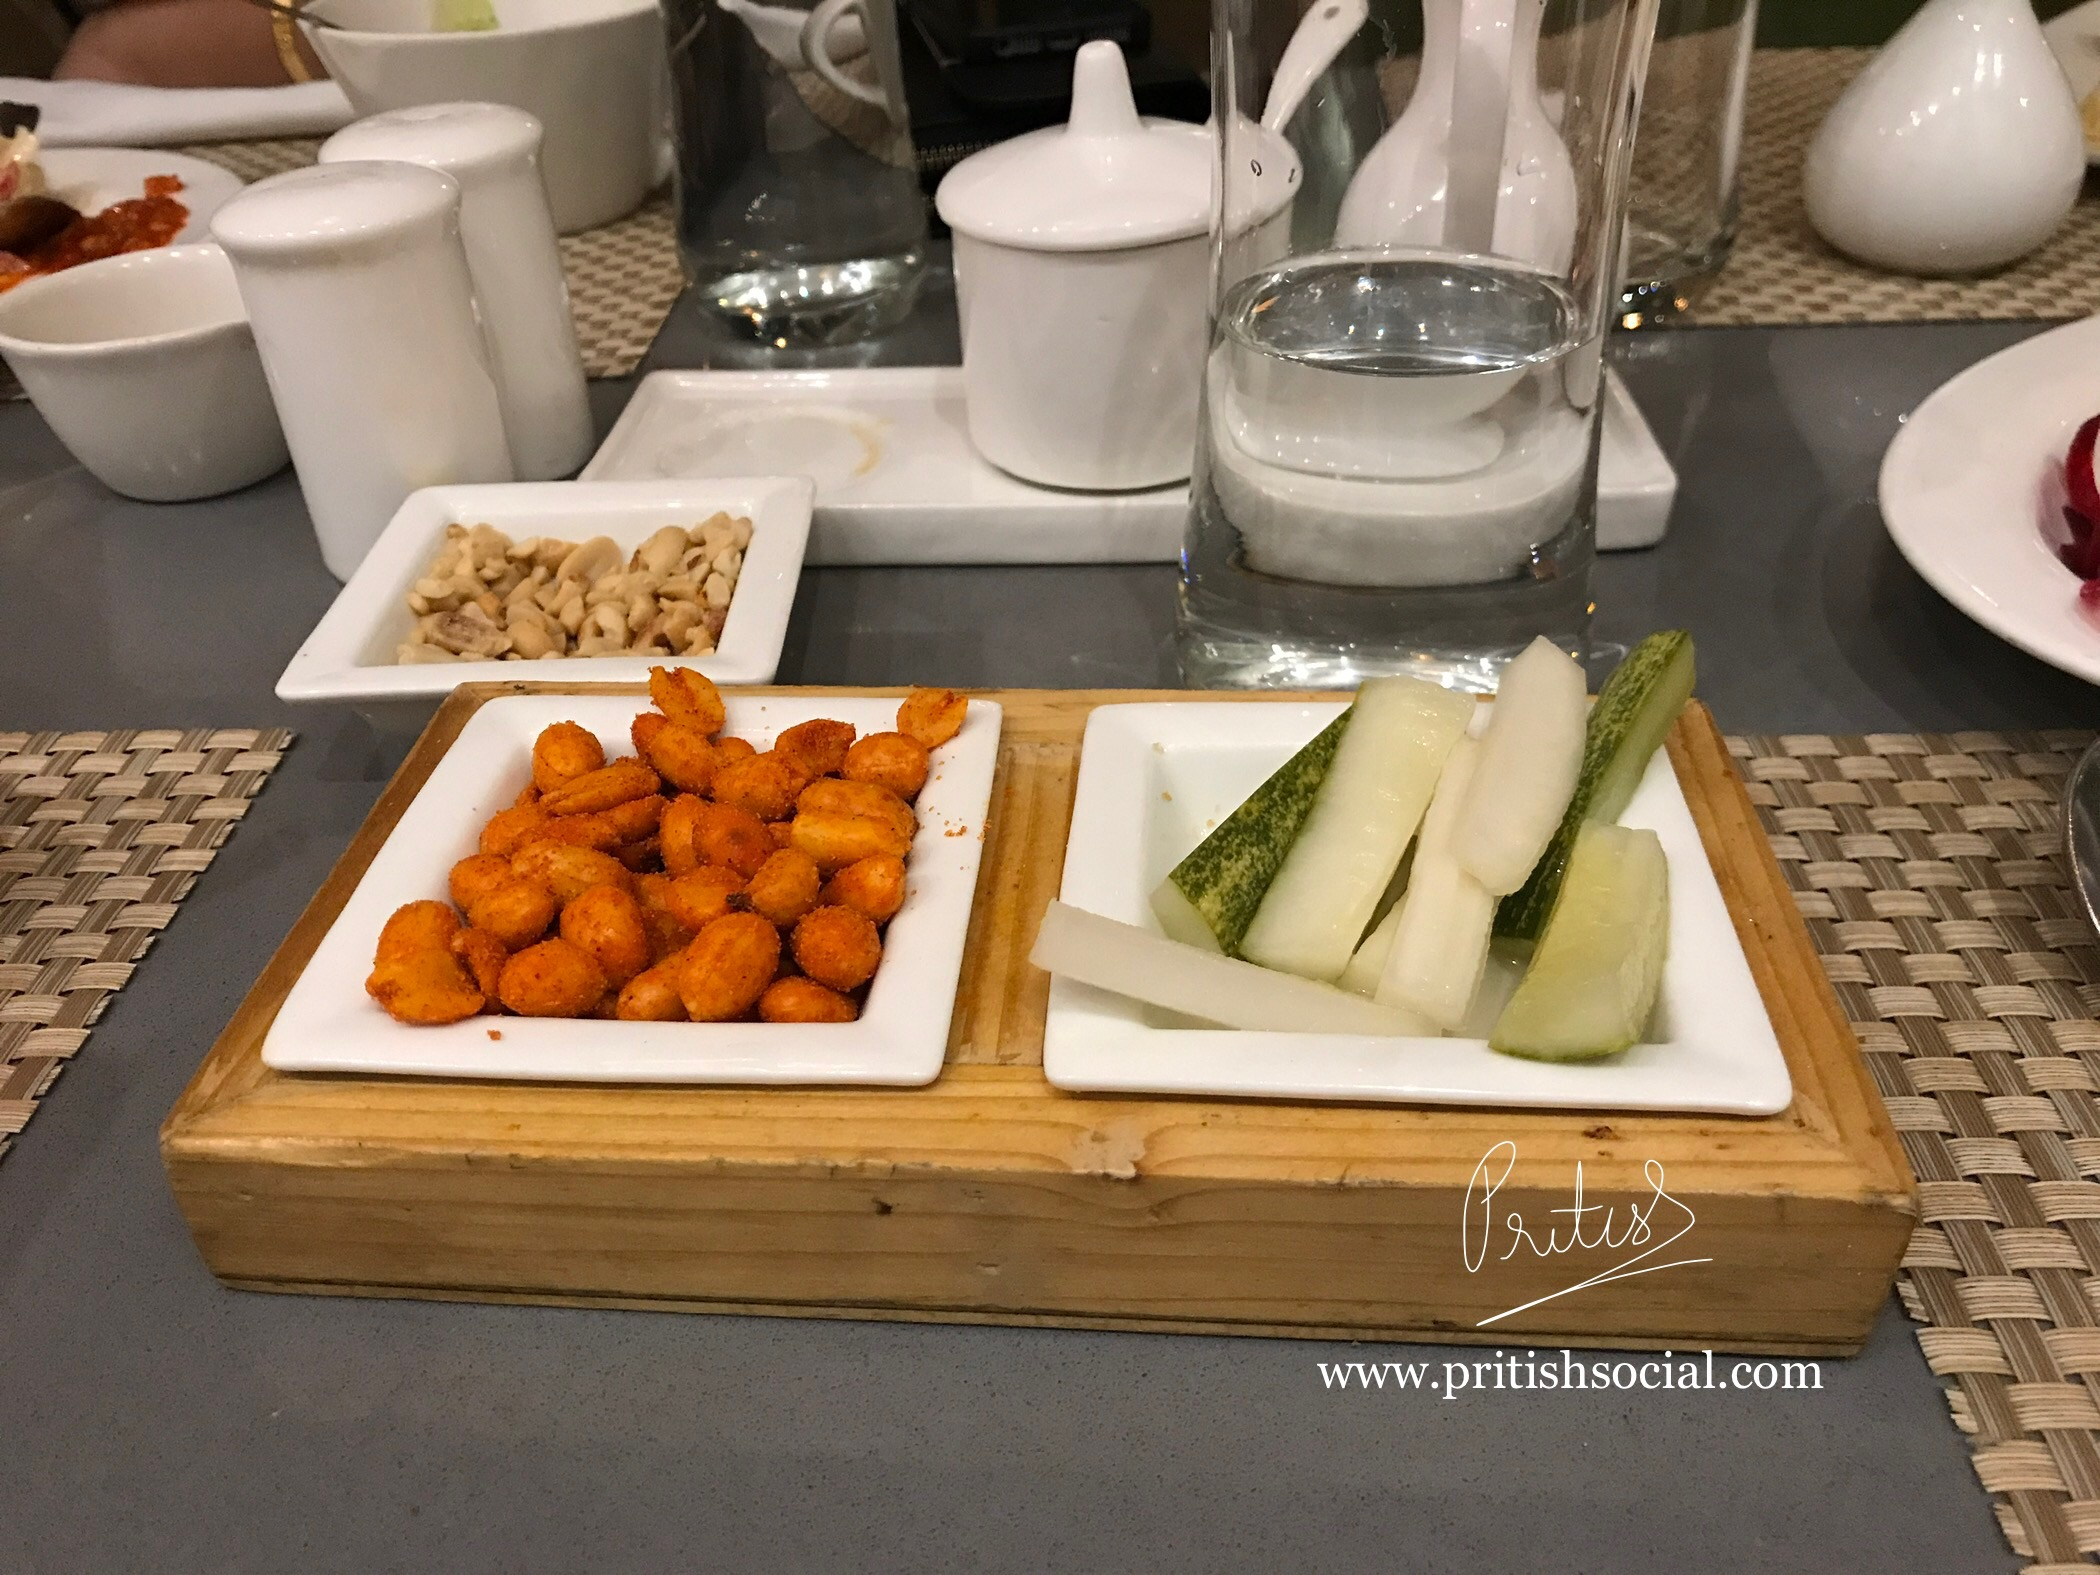 Hibachi Chandigarh Restaurant | Pan-Asian Food 4 | PritishSocial | Food Blog